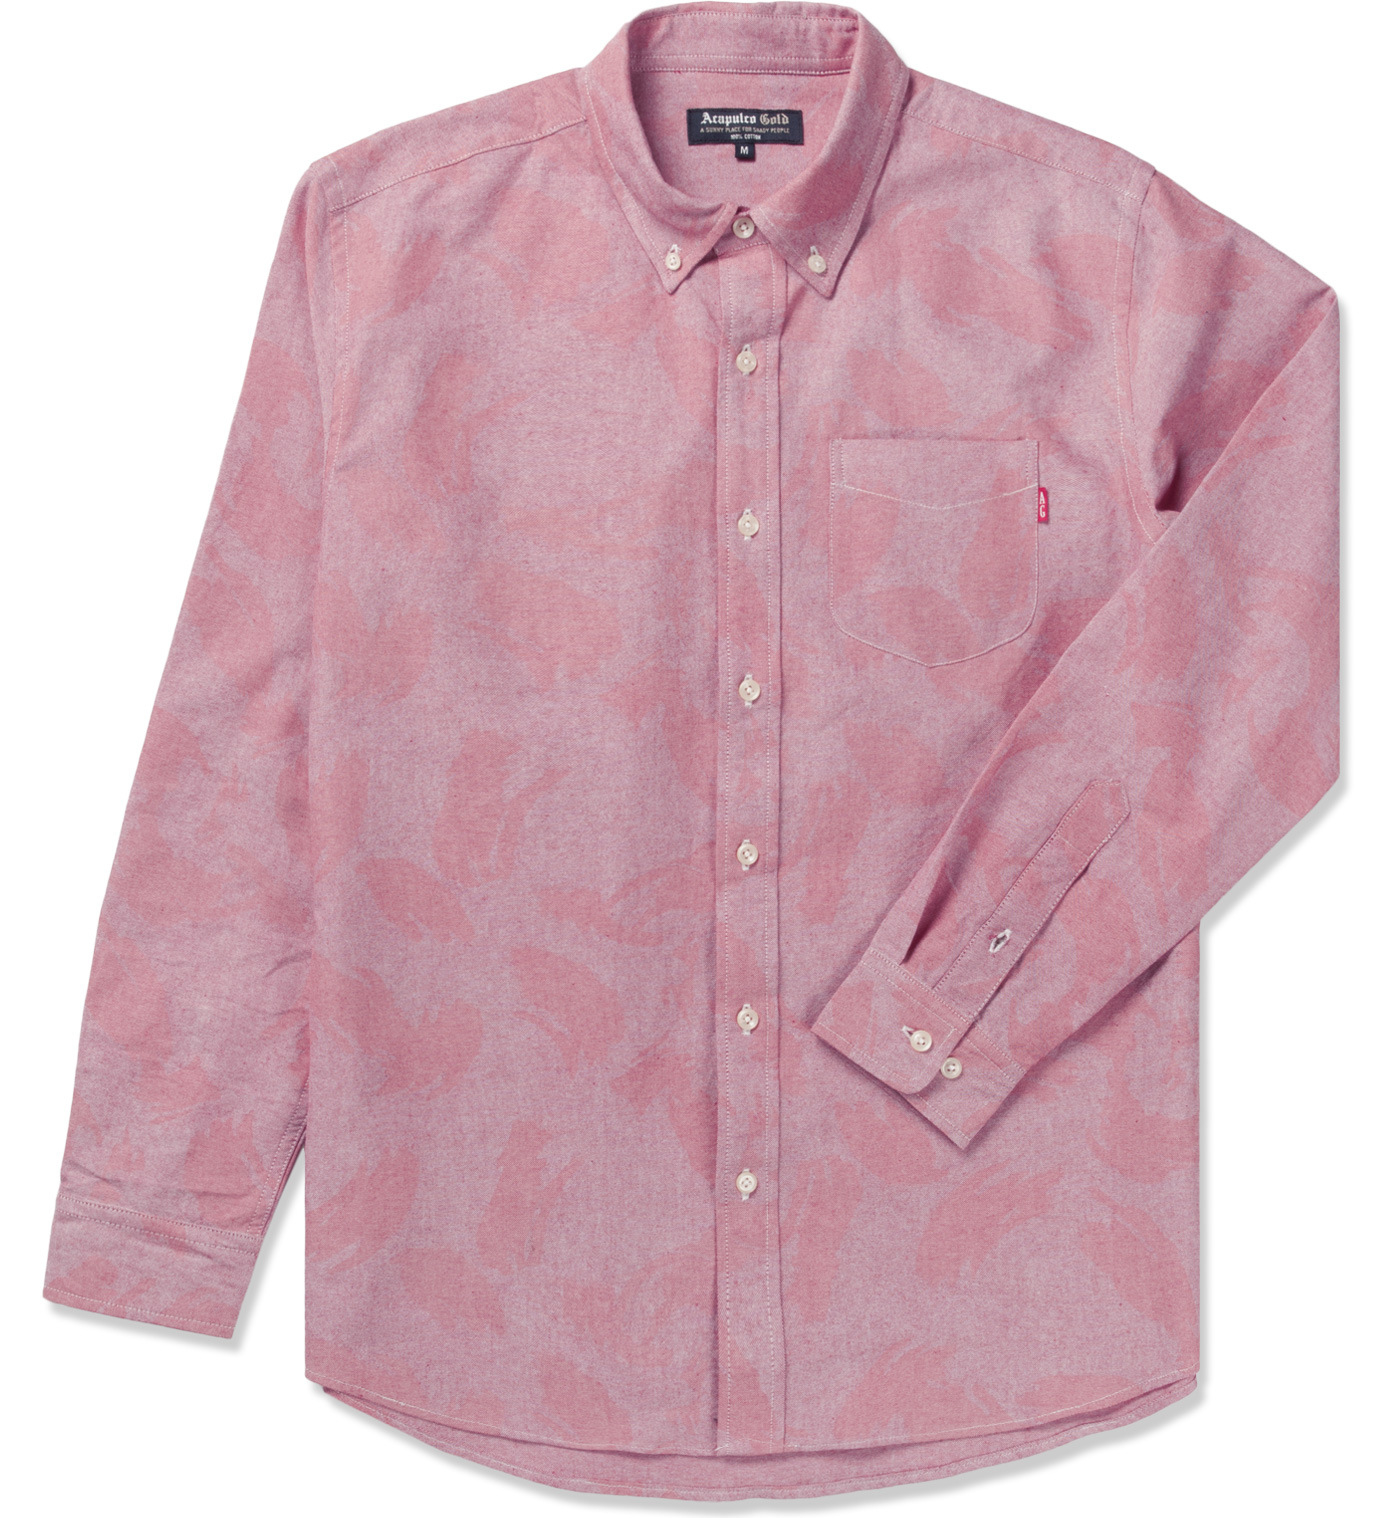 Acapulco Gold Red Camo Oxford L S Button Down Shirt In